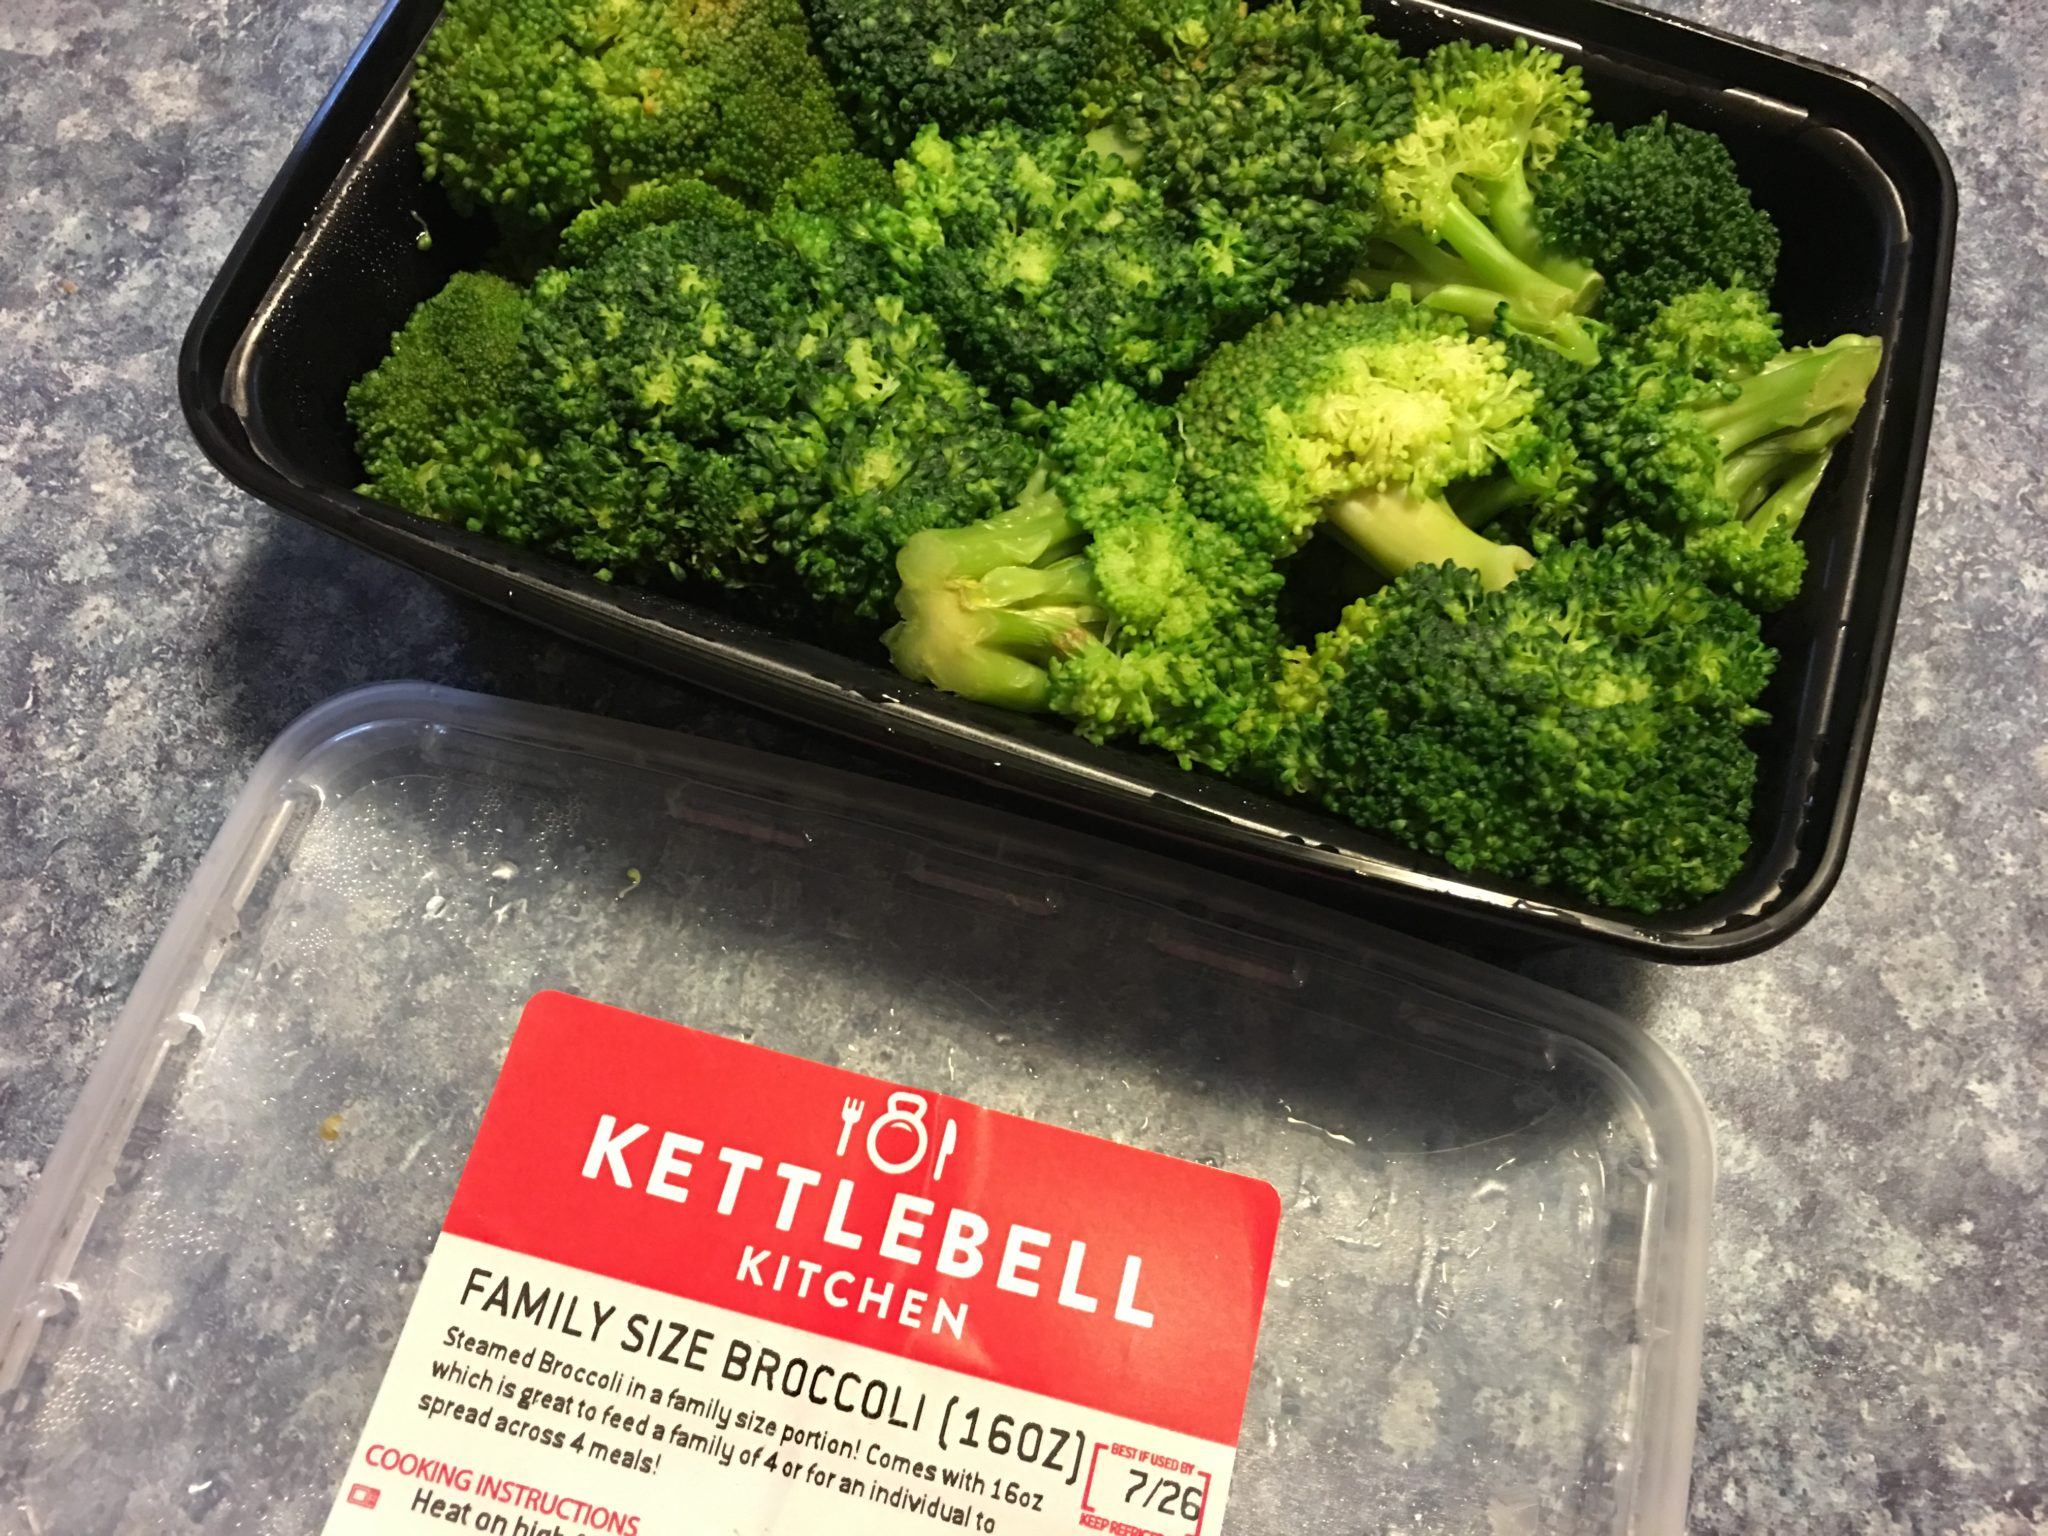 Kettlebell Kitchen: Healthy Meal Solutions for Busy Lives